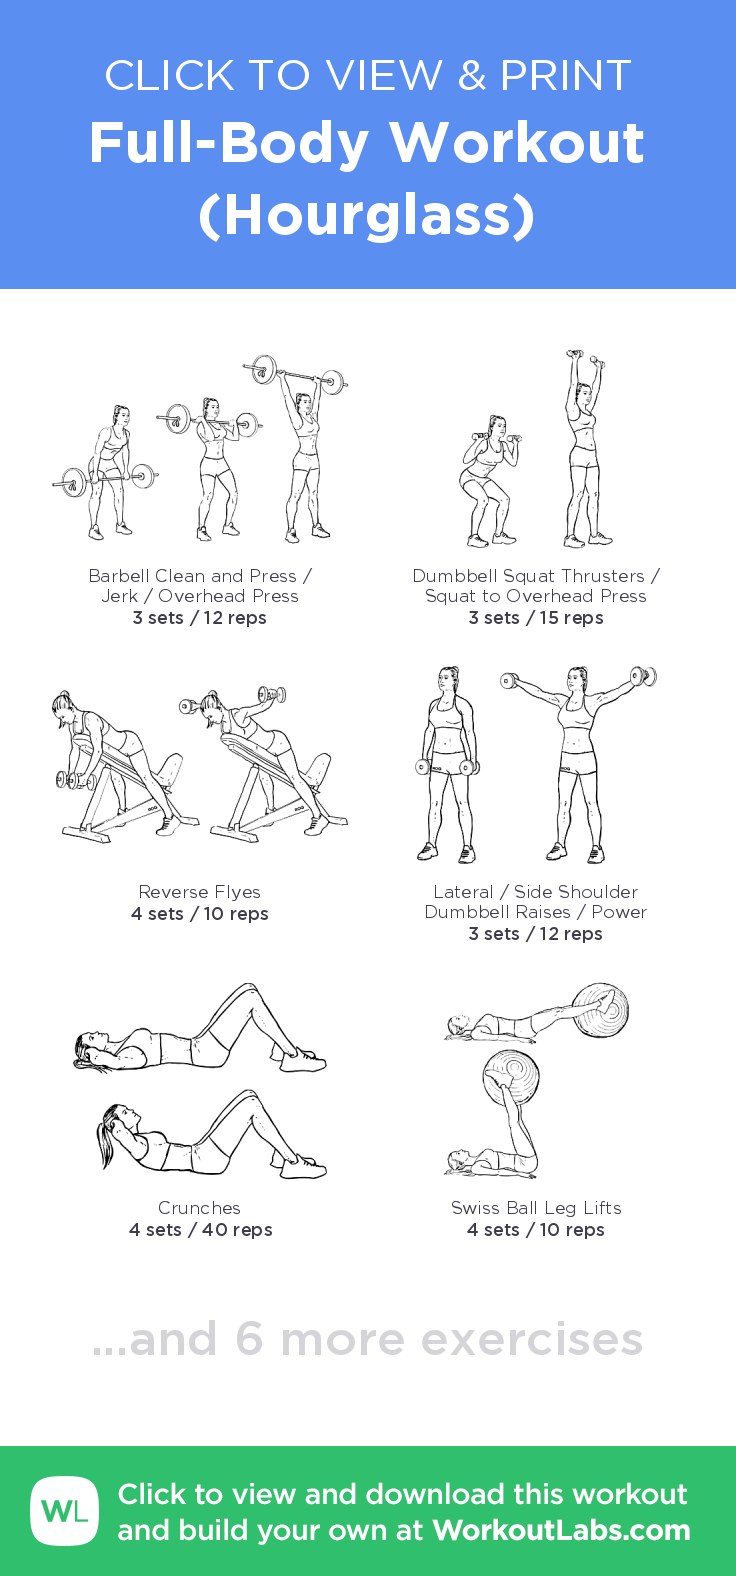 Full-Body Workout (Hourglass) – click to view and print this